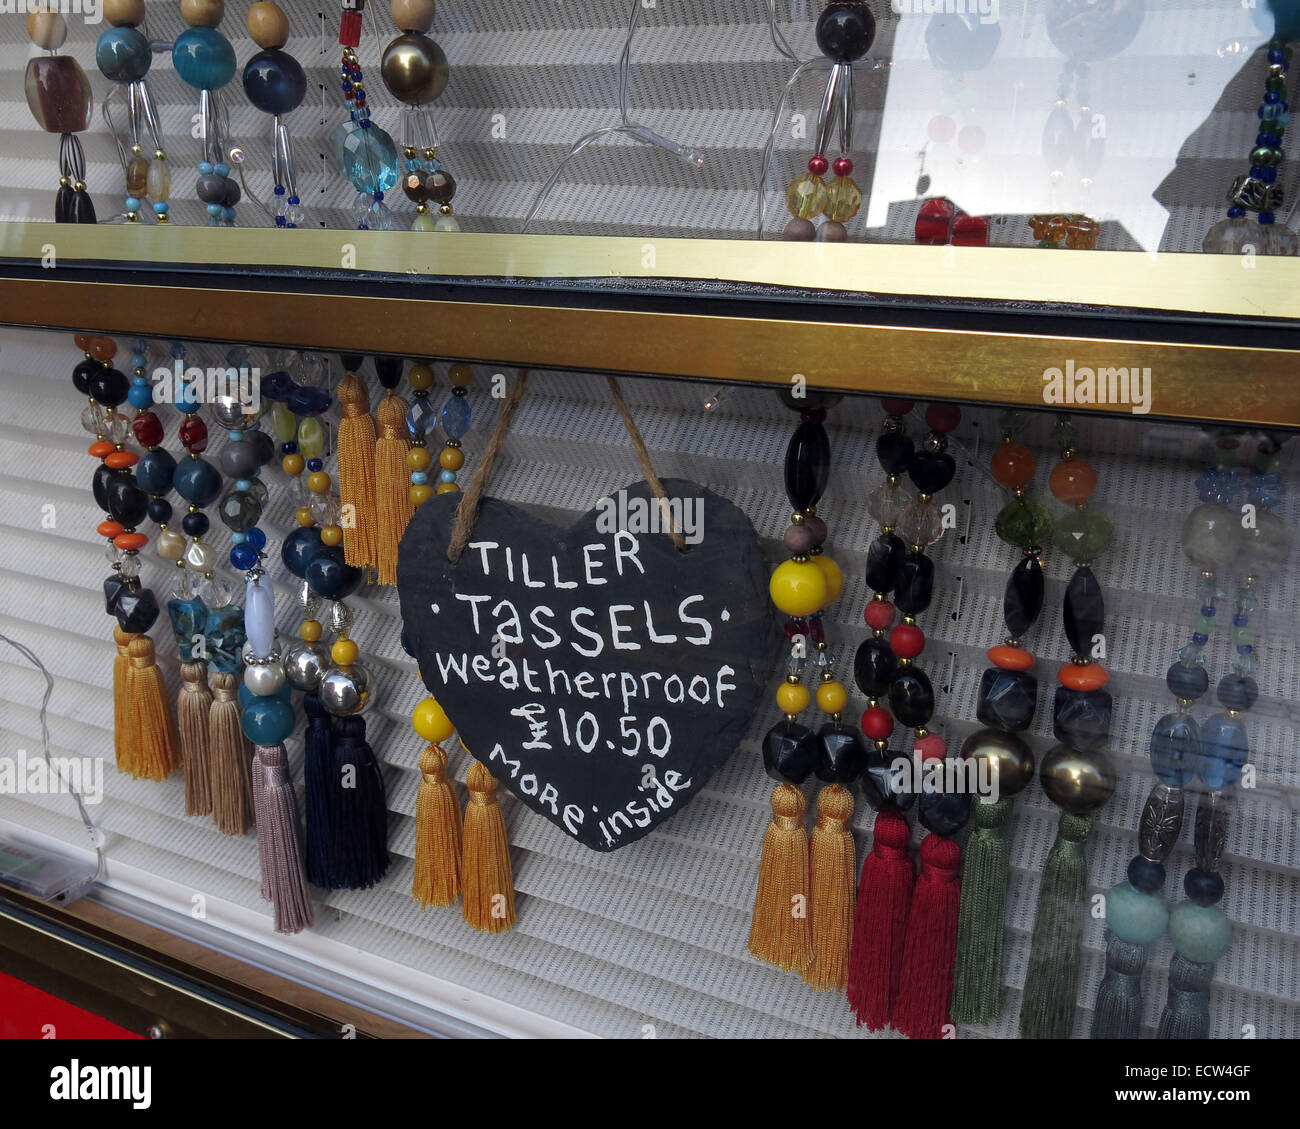 Tiller Tassels, Canalside jewellery, Chester Canal, Cheshire, England, UK - Stock Image